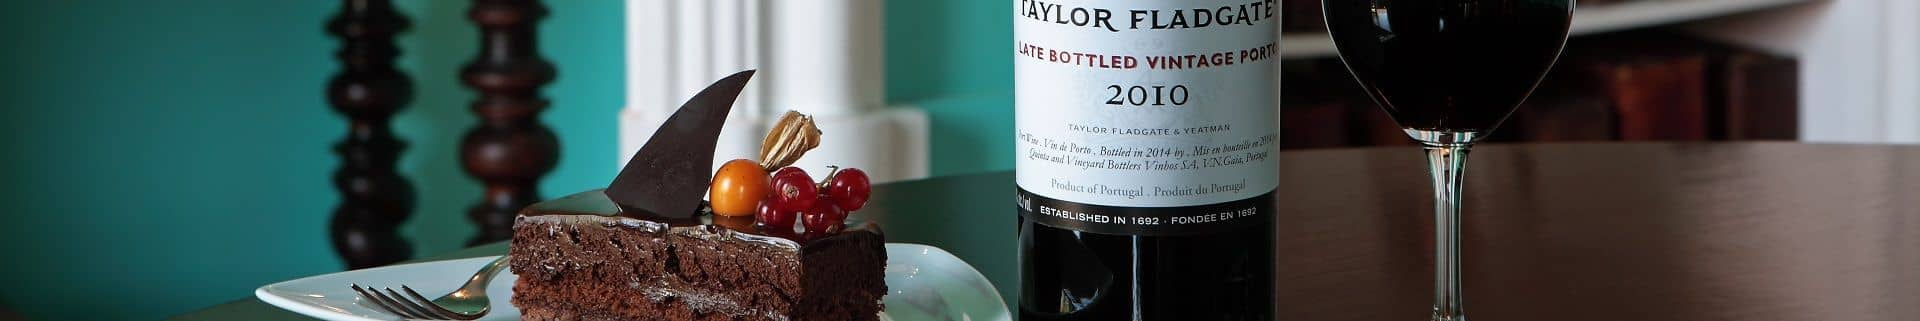 Pairing Port wine & Food: Fruity Red Ports - Taylor Fladgate